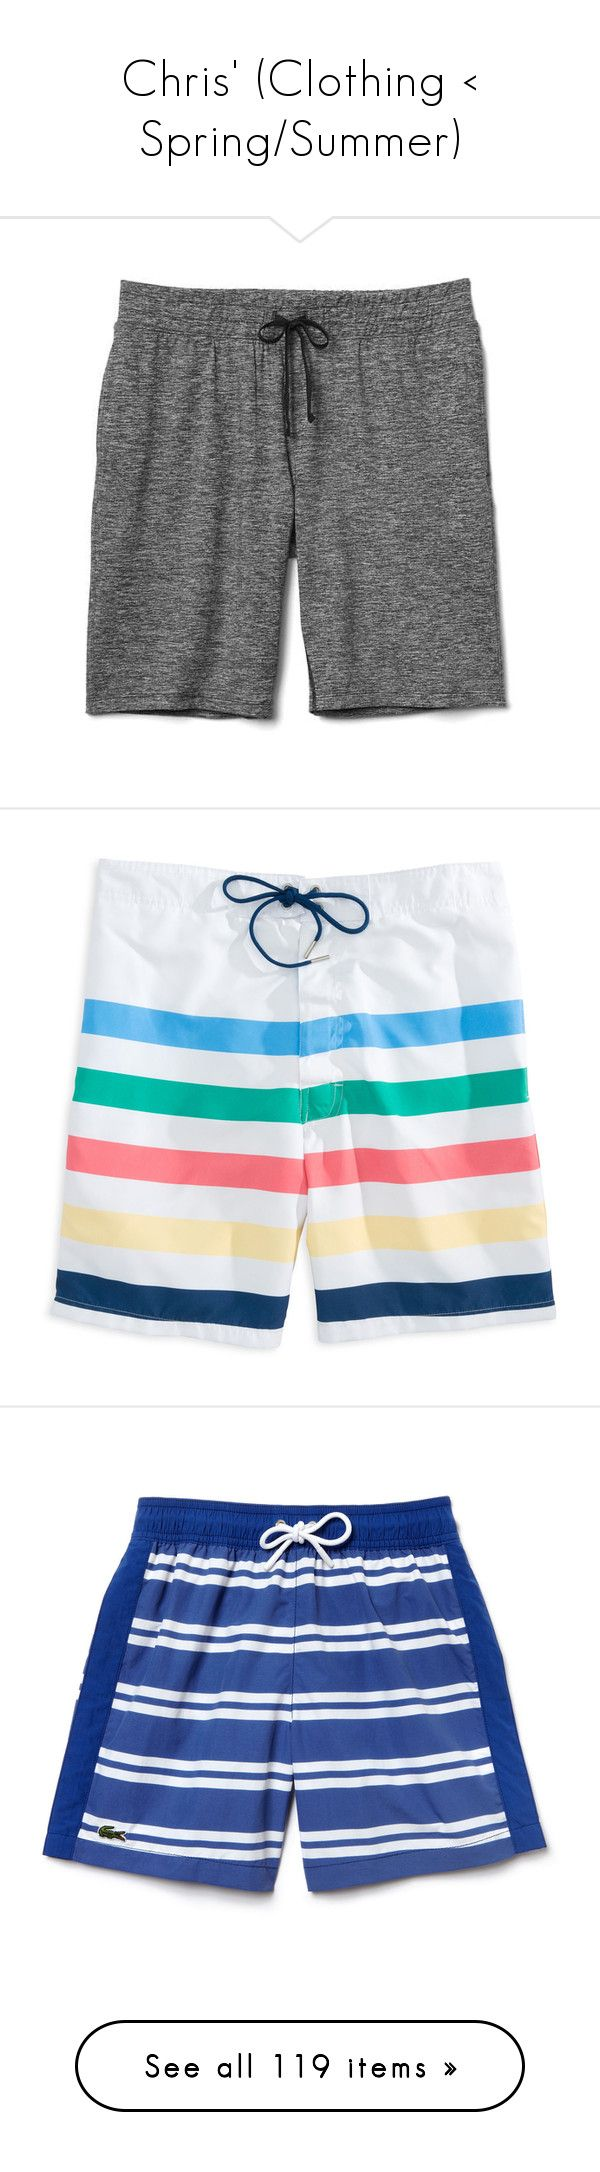 """""""Chris' (Clothing < Spring/Summer)"""" by babybutter-stories ❤ liked on Polyvore featuring brooksfamily, men's fashion, men's clothing, men's activewear, men's activewear shorts, black heather, regular, mens activewear shorts, mens activewear and stripe"""